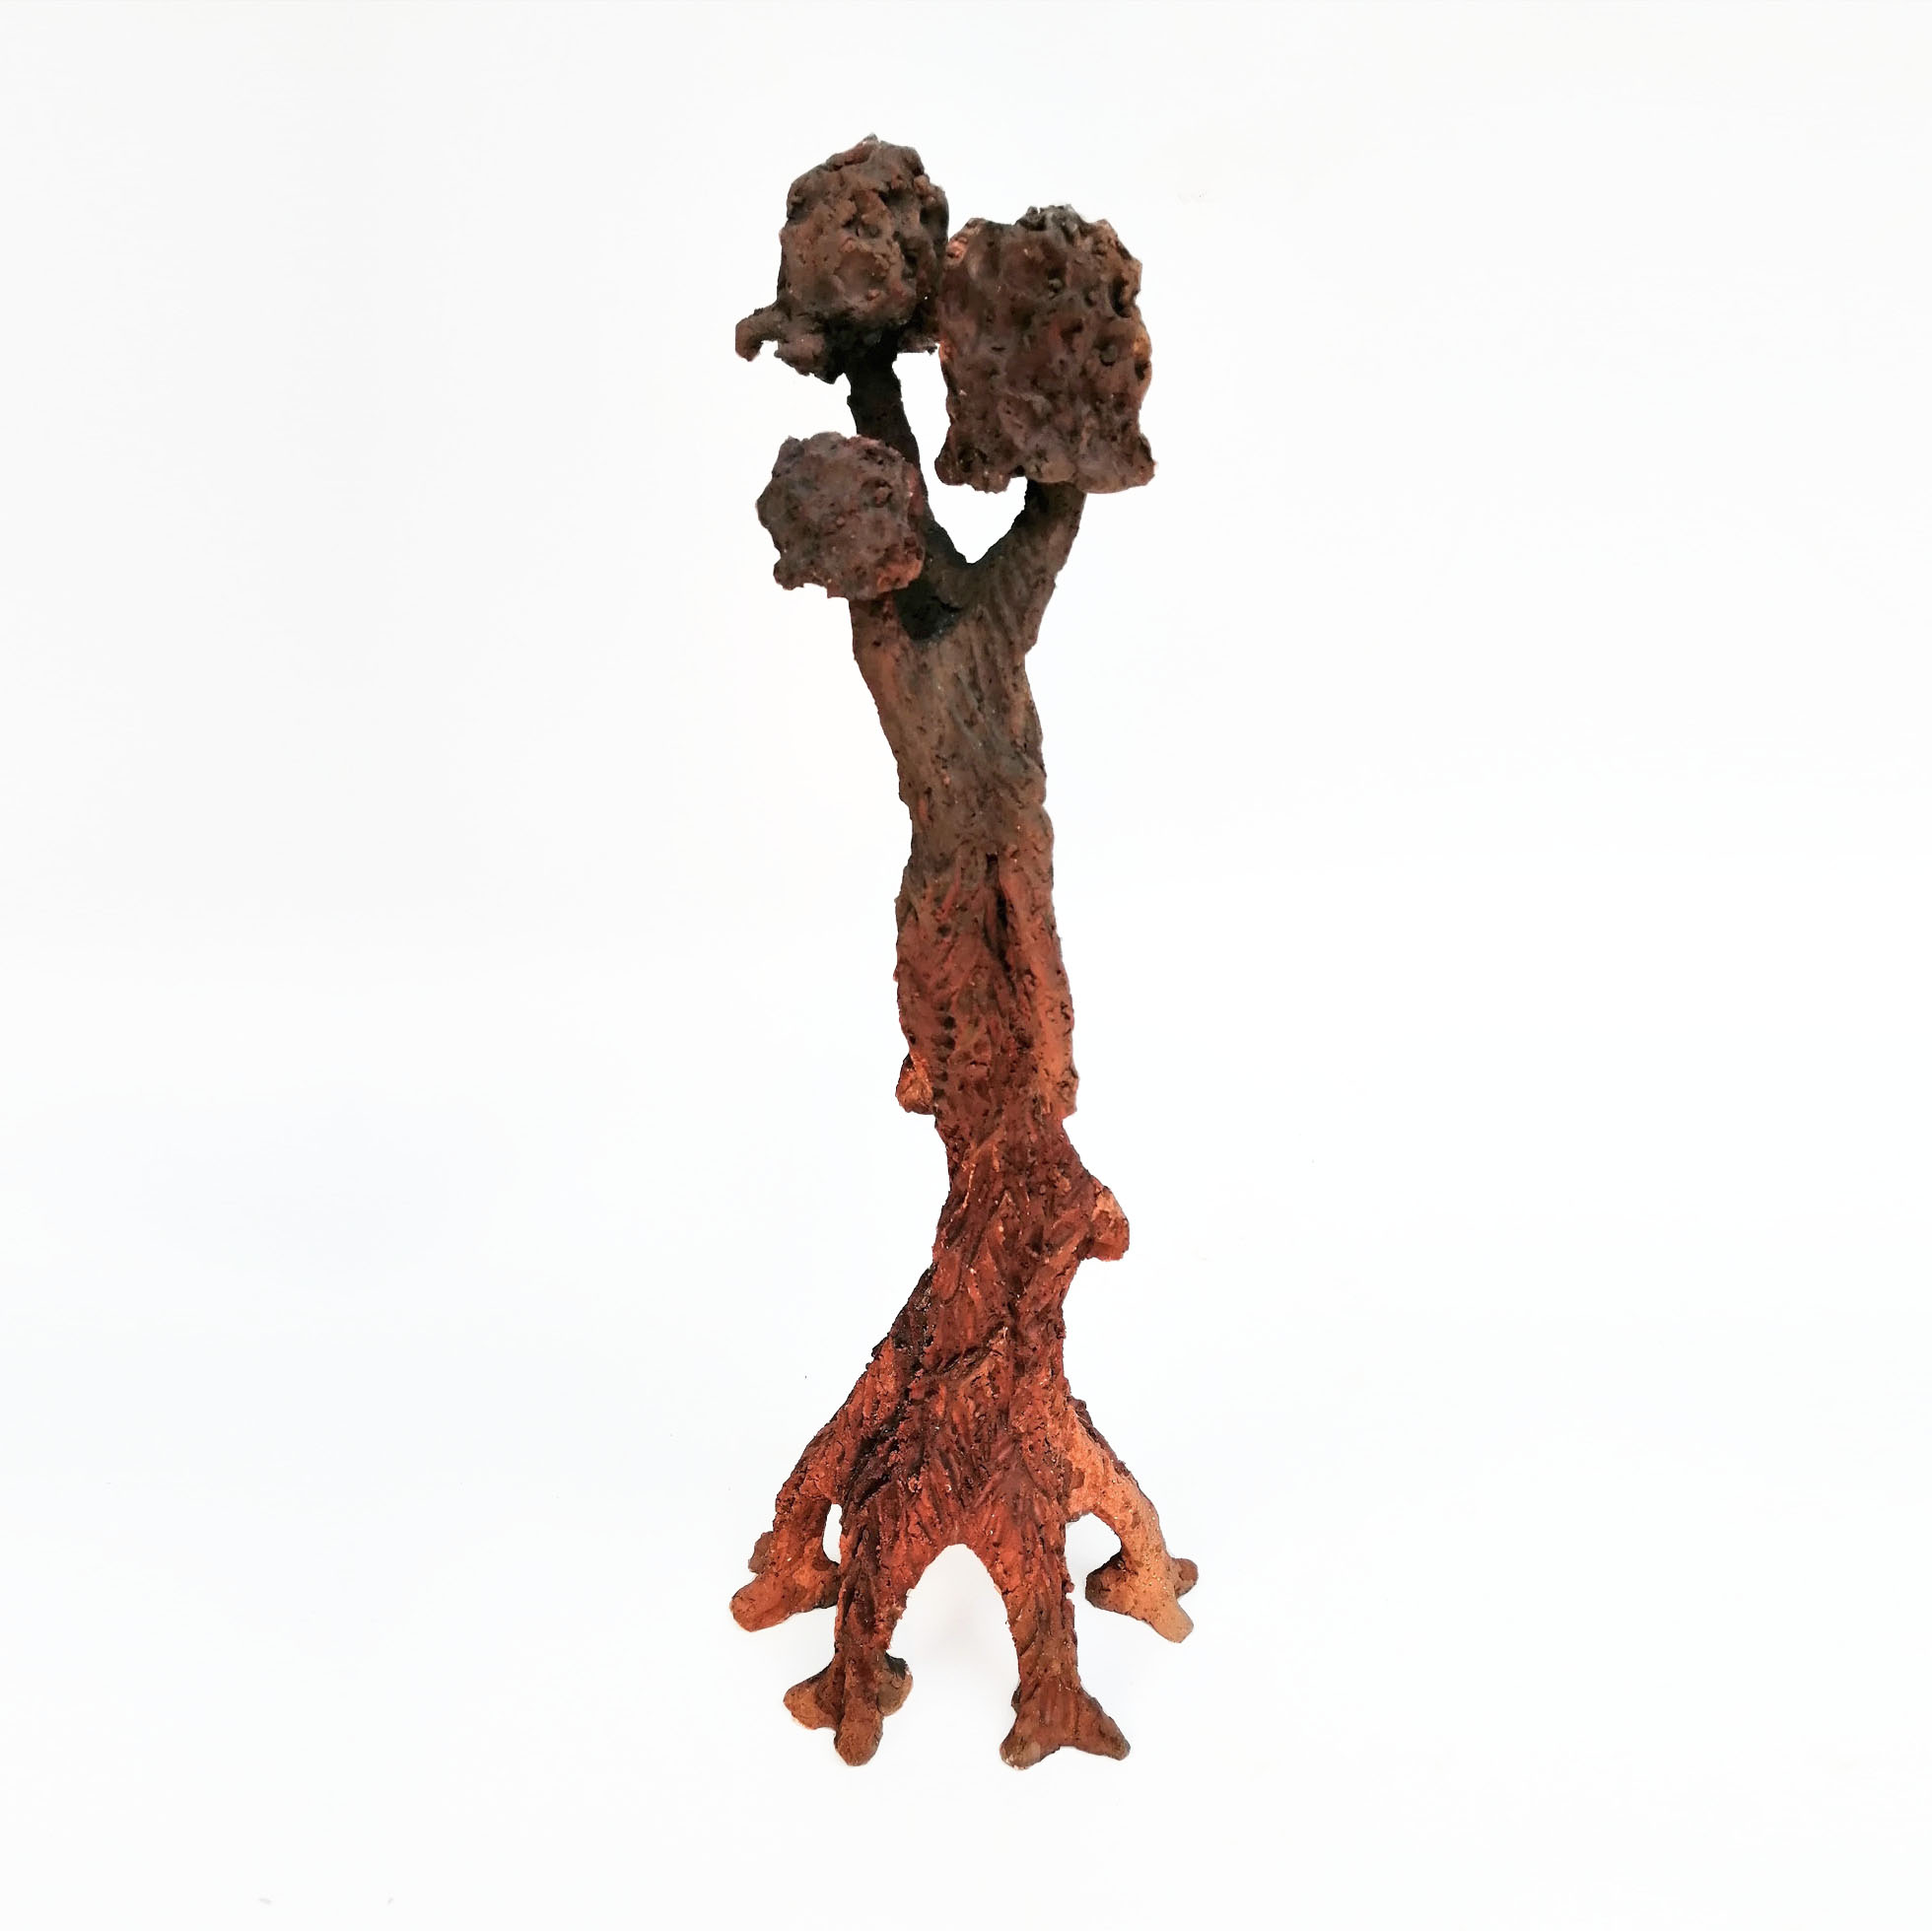 Yucatecan #9 by Gabriel Niquete. Is a metaphor for the entrails of living beings. A novel artistic expression in American art. Modeled in clay with primitive burning finishes.